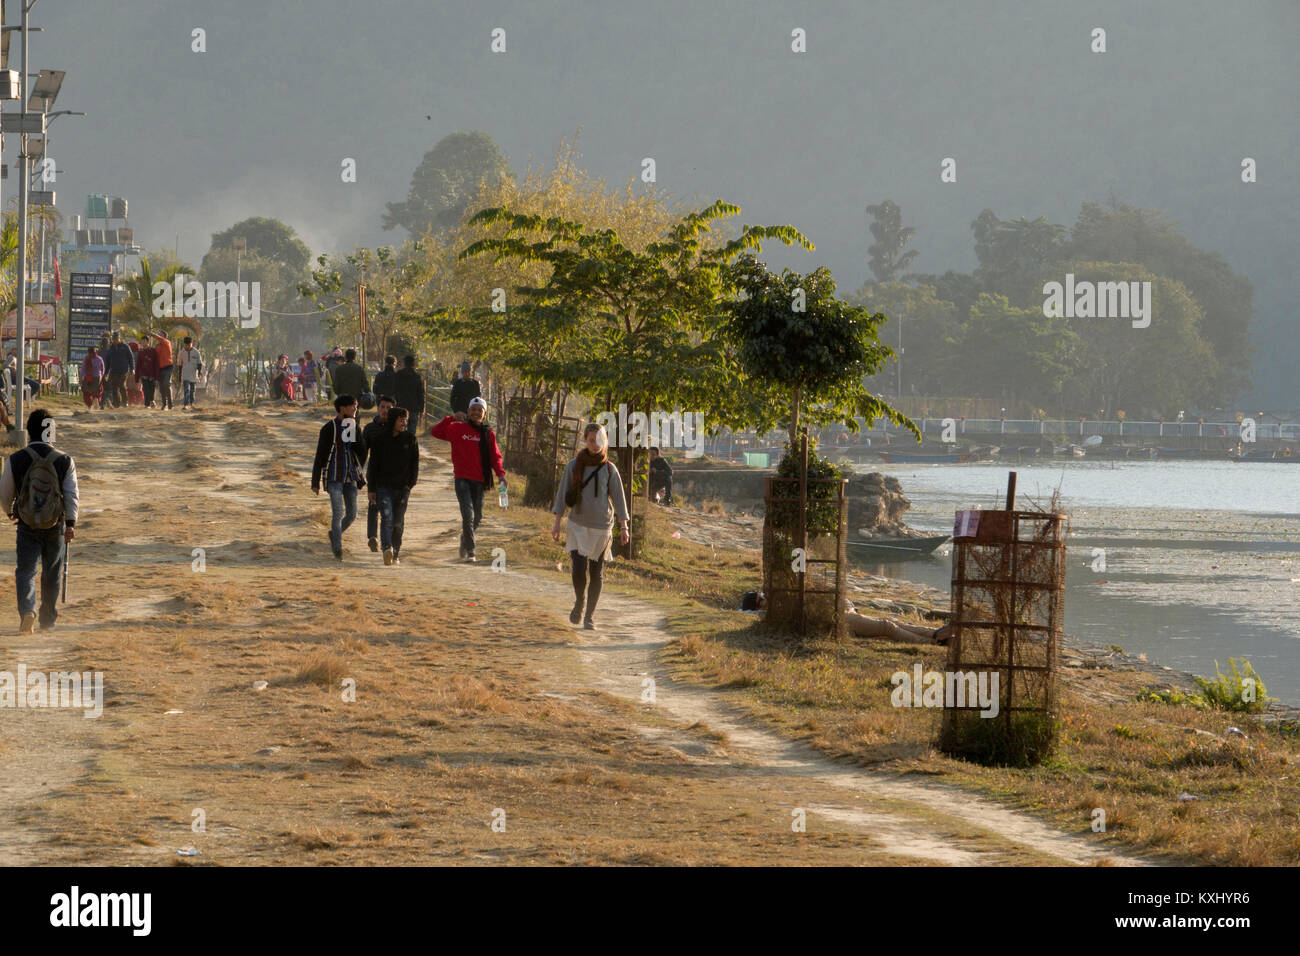 People walking along the edge of Phewa Lake in Pokhara, Nepal Stock Photo